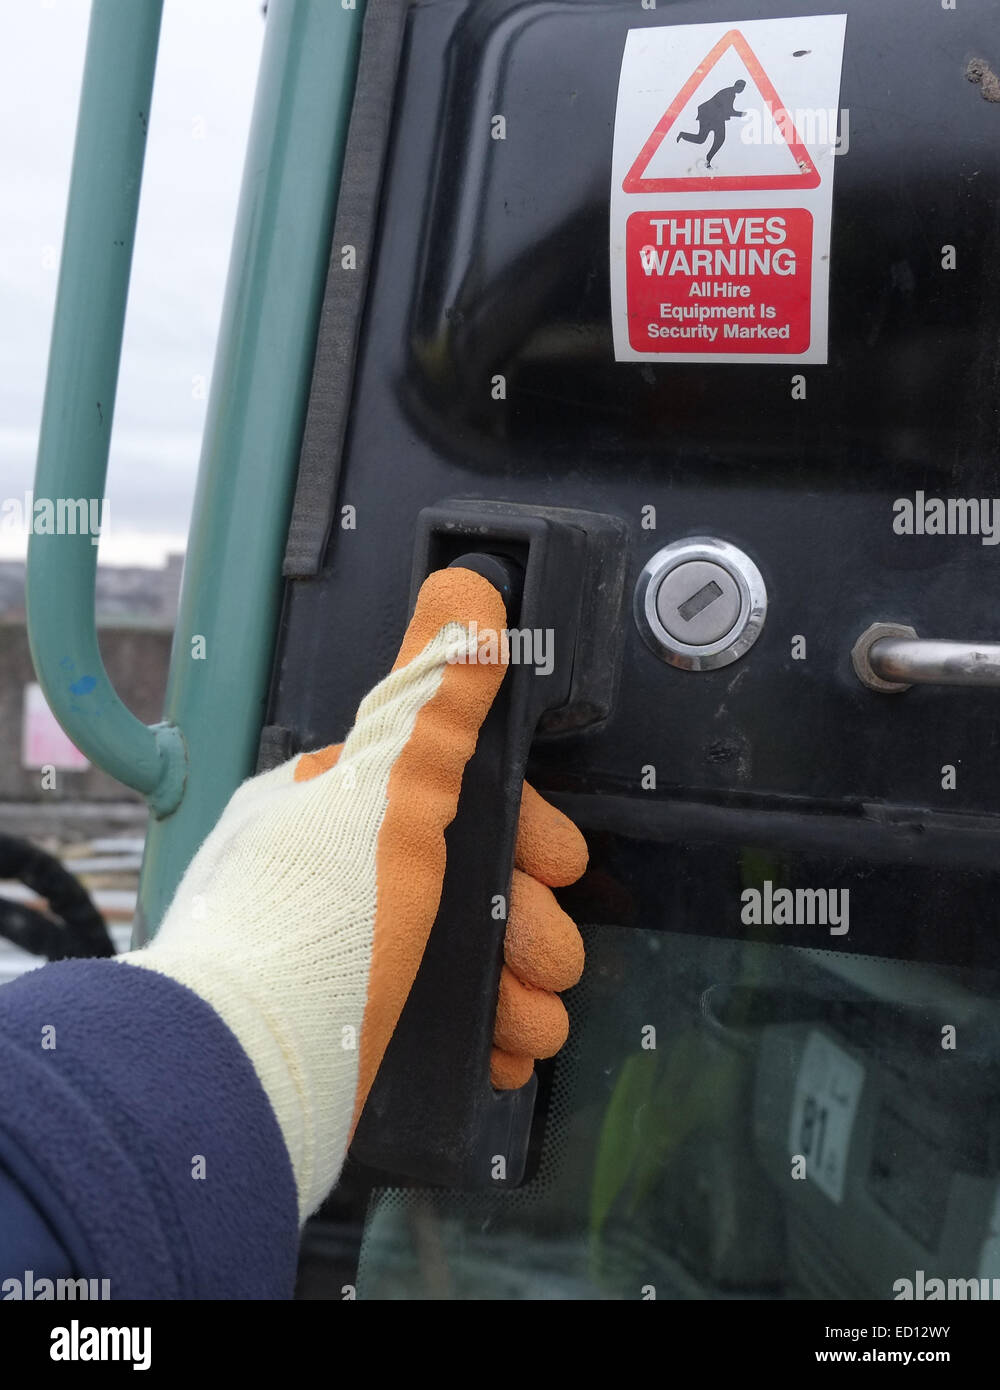 Gloved hand of a construction worker about to open the door of his machine, with theft warning sticker. 22nd December - Stock Image